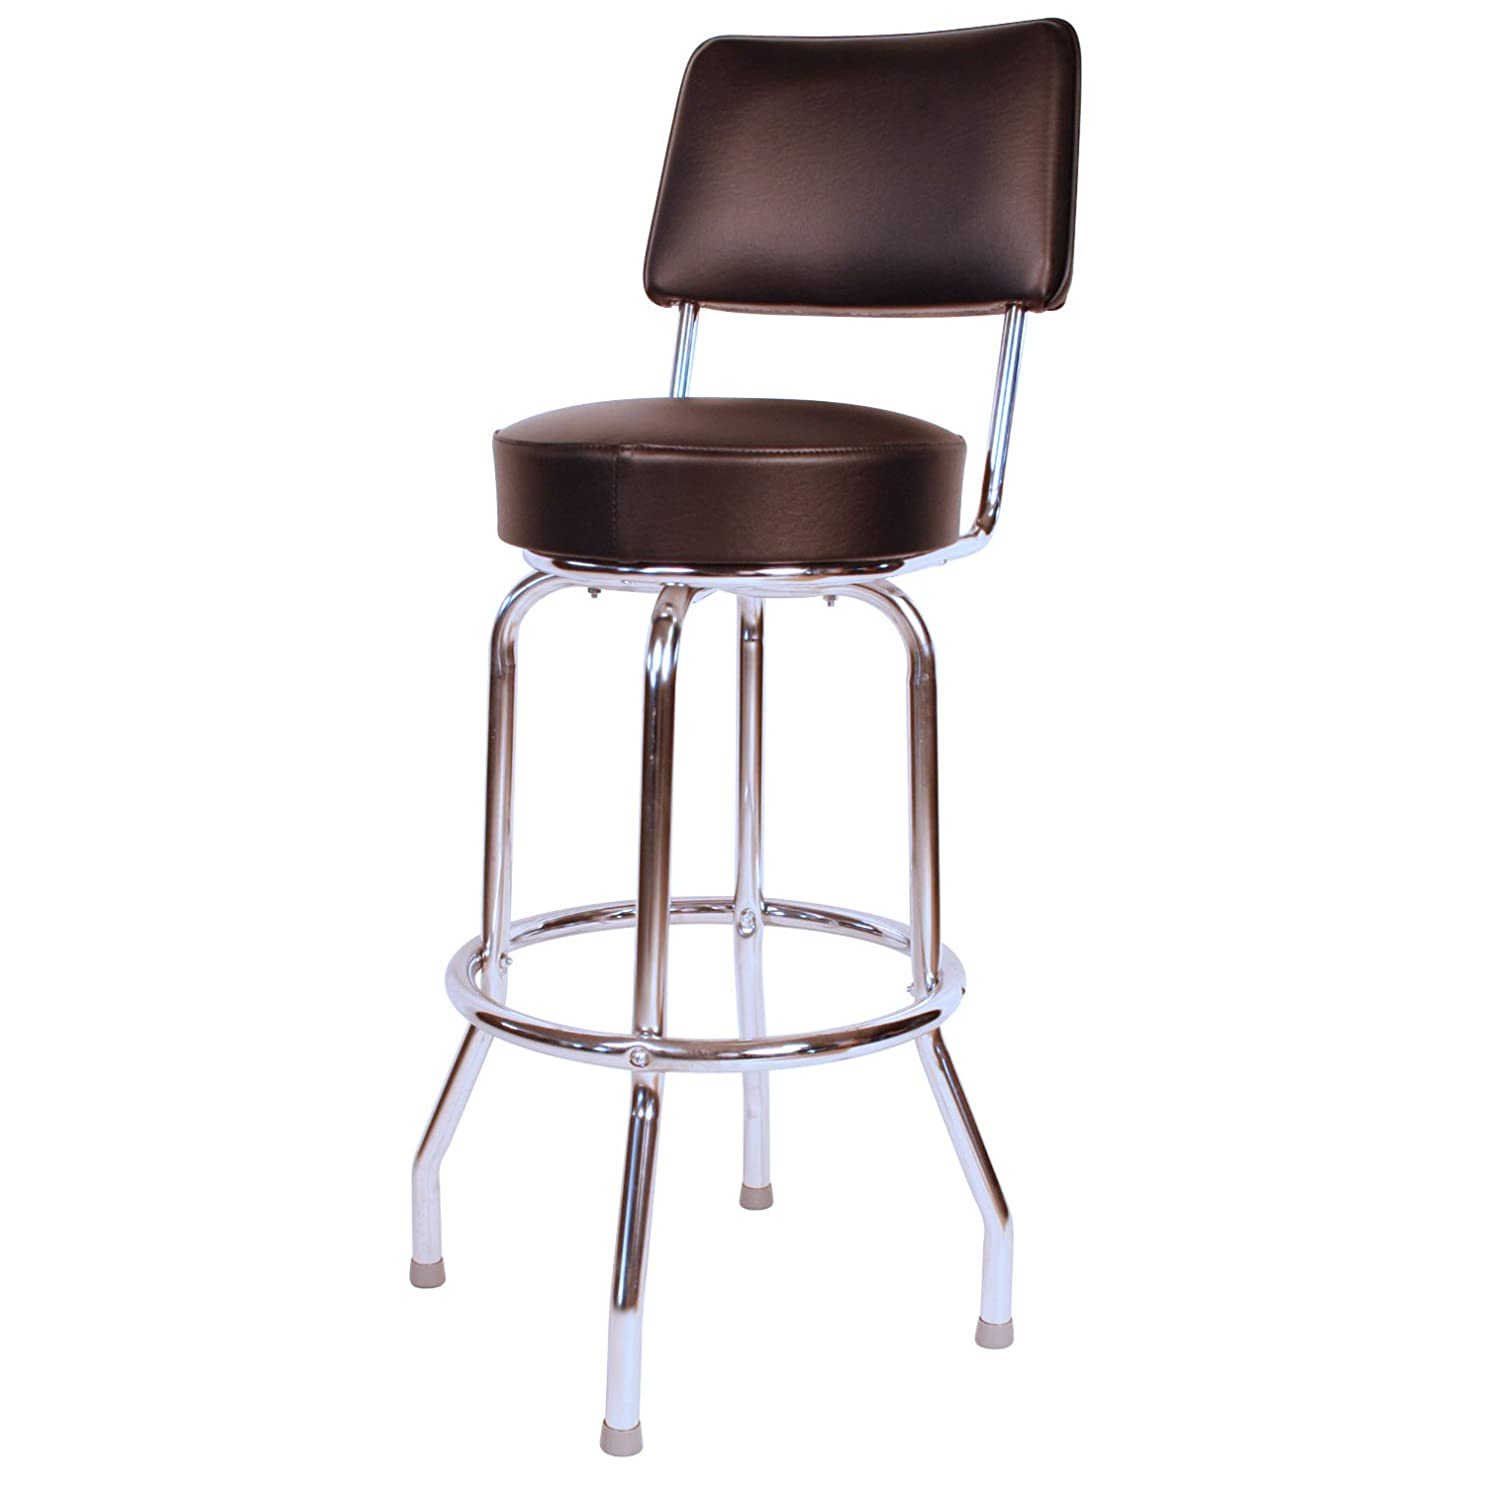 Pneumatic Bikers Stool & Shop Seat